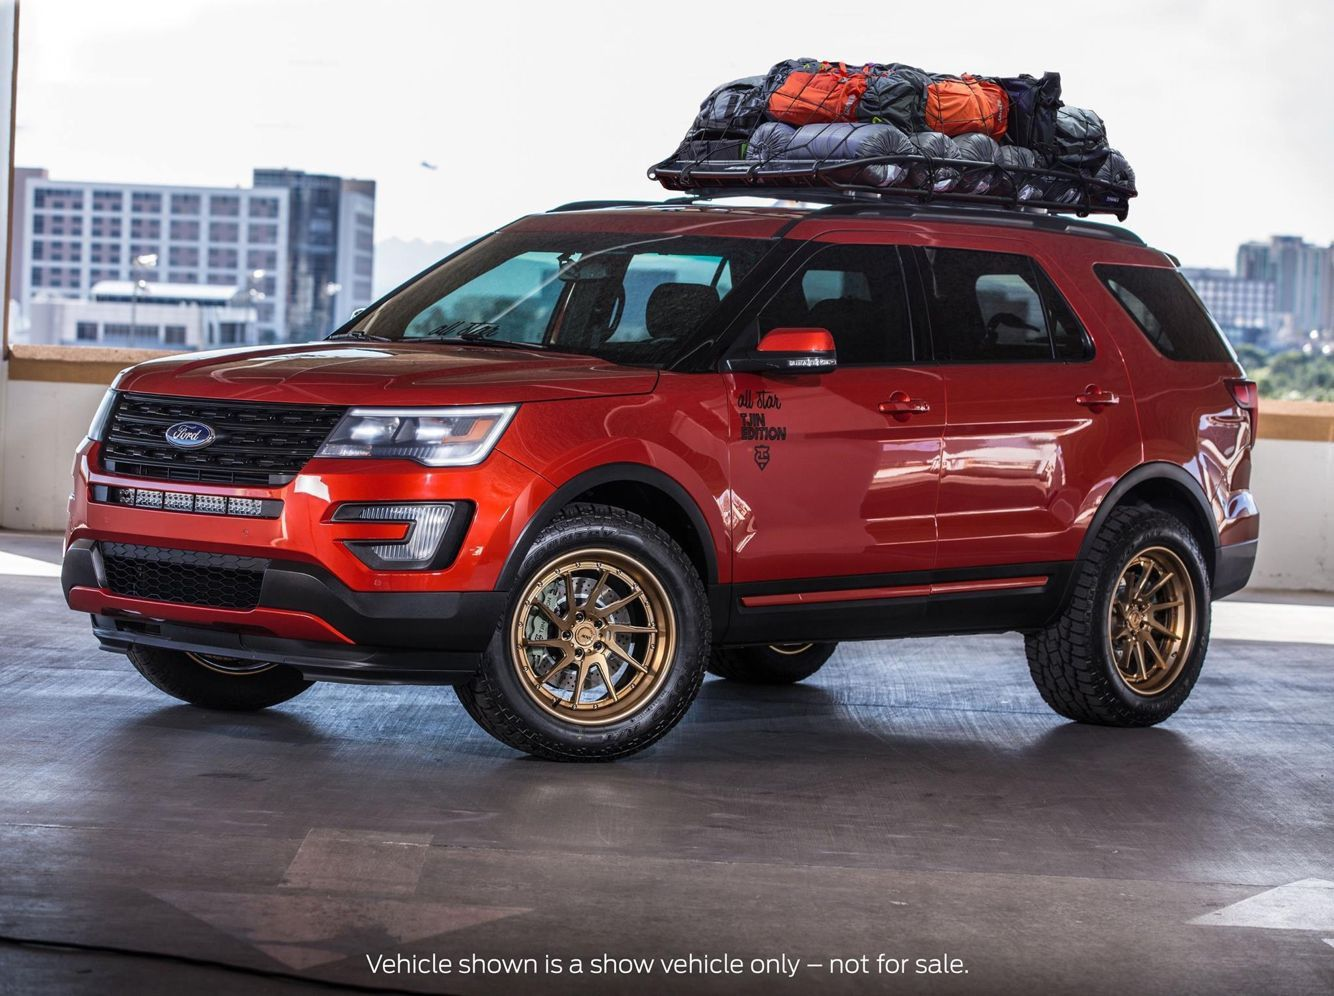 53 Best Of 2020 Ford Explorer Ford Explorer 2020 Ford Explorer